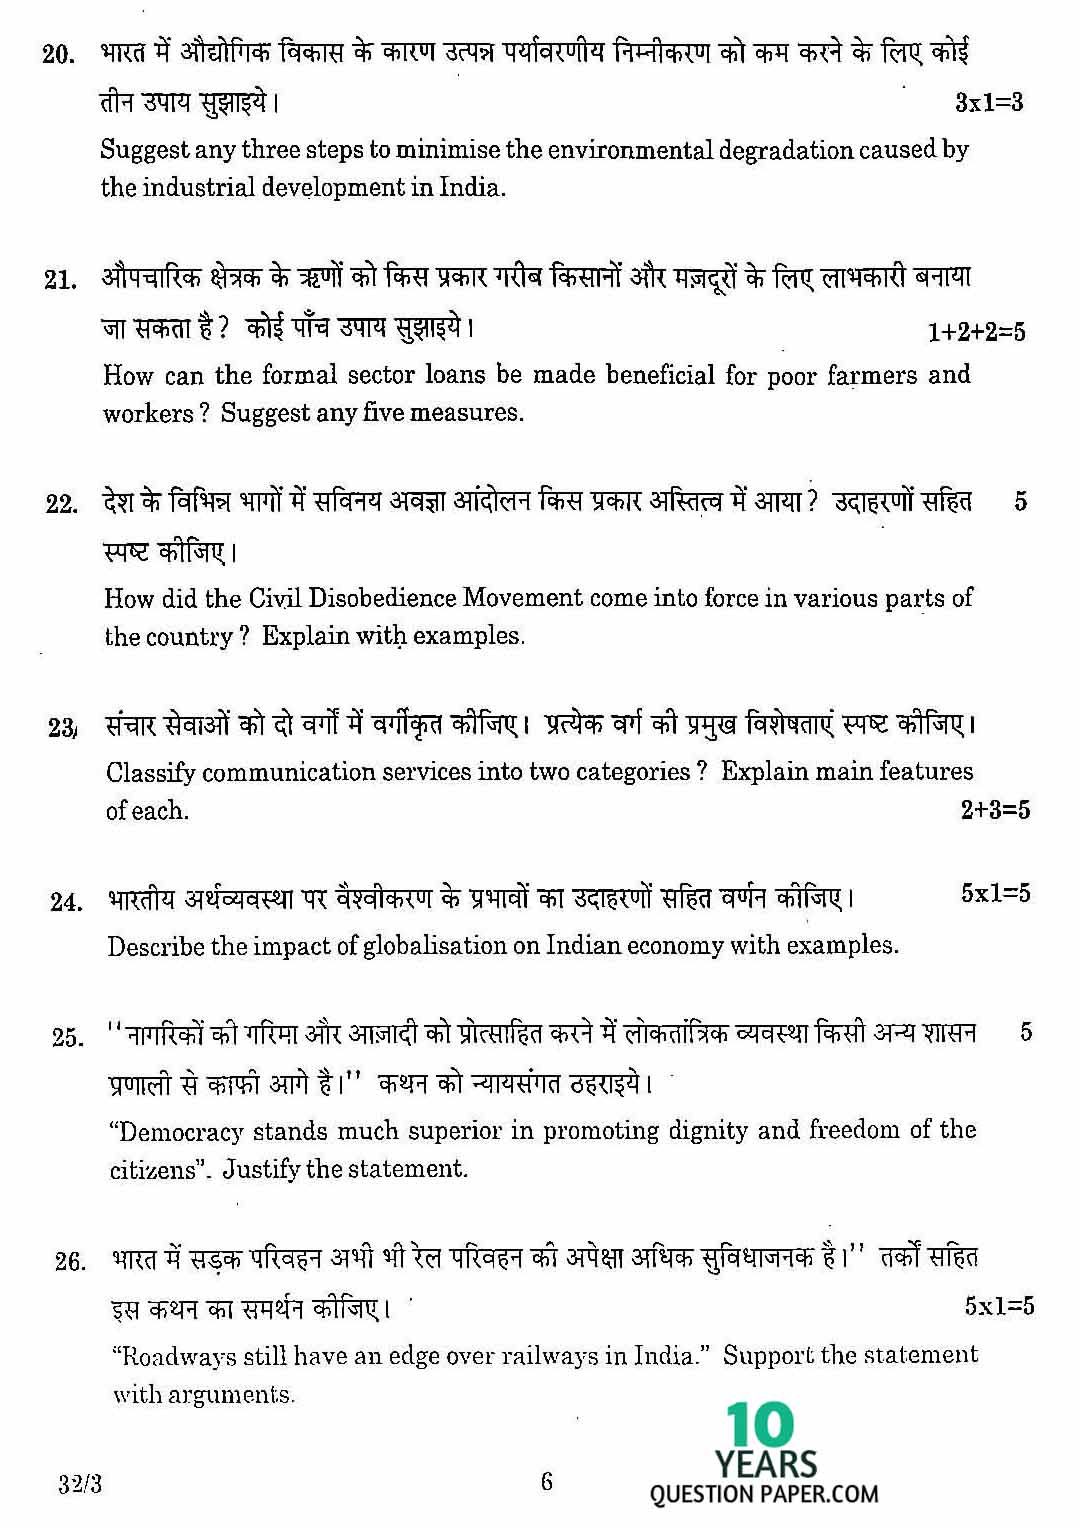 cbse class 10th 2016 Social Science question paper